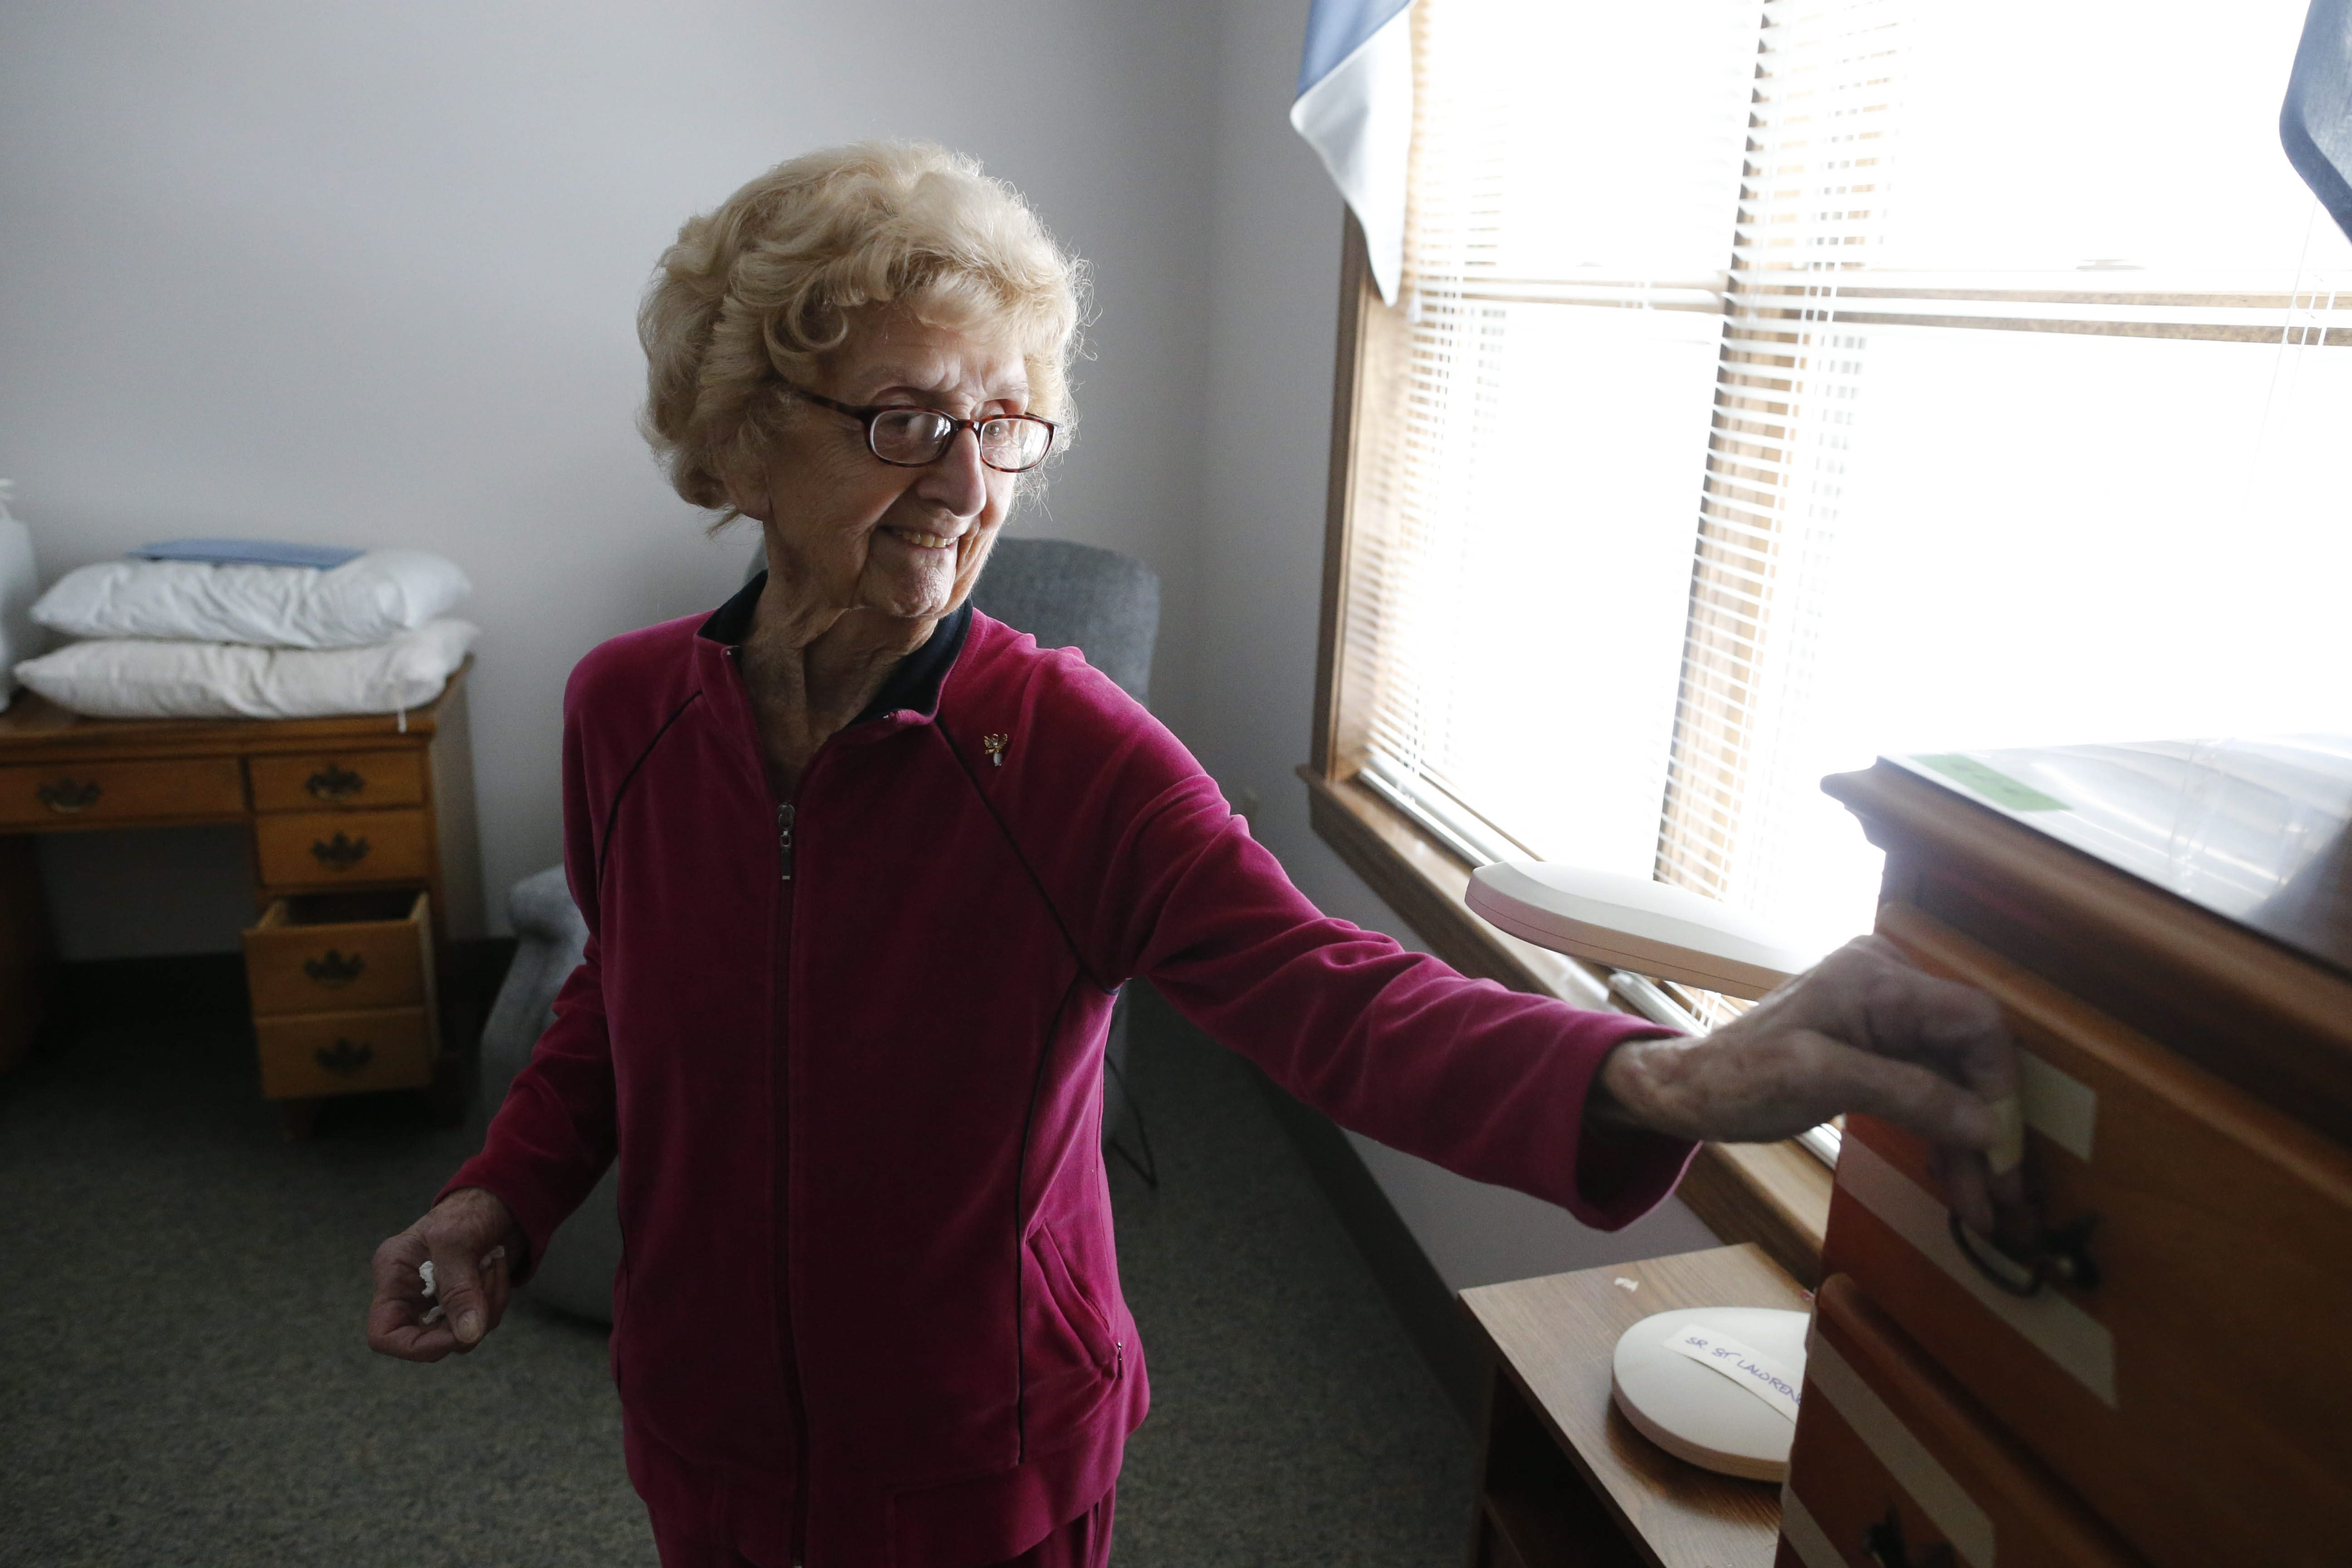 """Sister St. Lawrence, 99, starts to organize as movers fill her new room with her belongings at the new residence for Sisters of St. Mary of Namur on Lafayette Avenue near Grant Street on Wednesday, March 11, 2015.  Many sisters are returning after moving away for the construction of a sizable addition to the convent.  """"Saint,"""" as she is called by her sisters, spent the time away in Lockport.  (Derek Gee/Buffalo News)"""